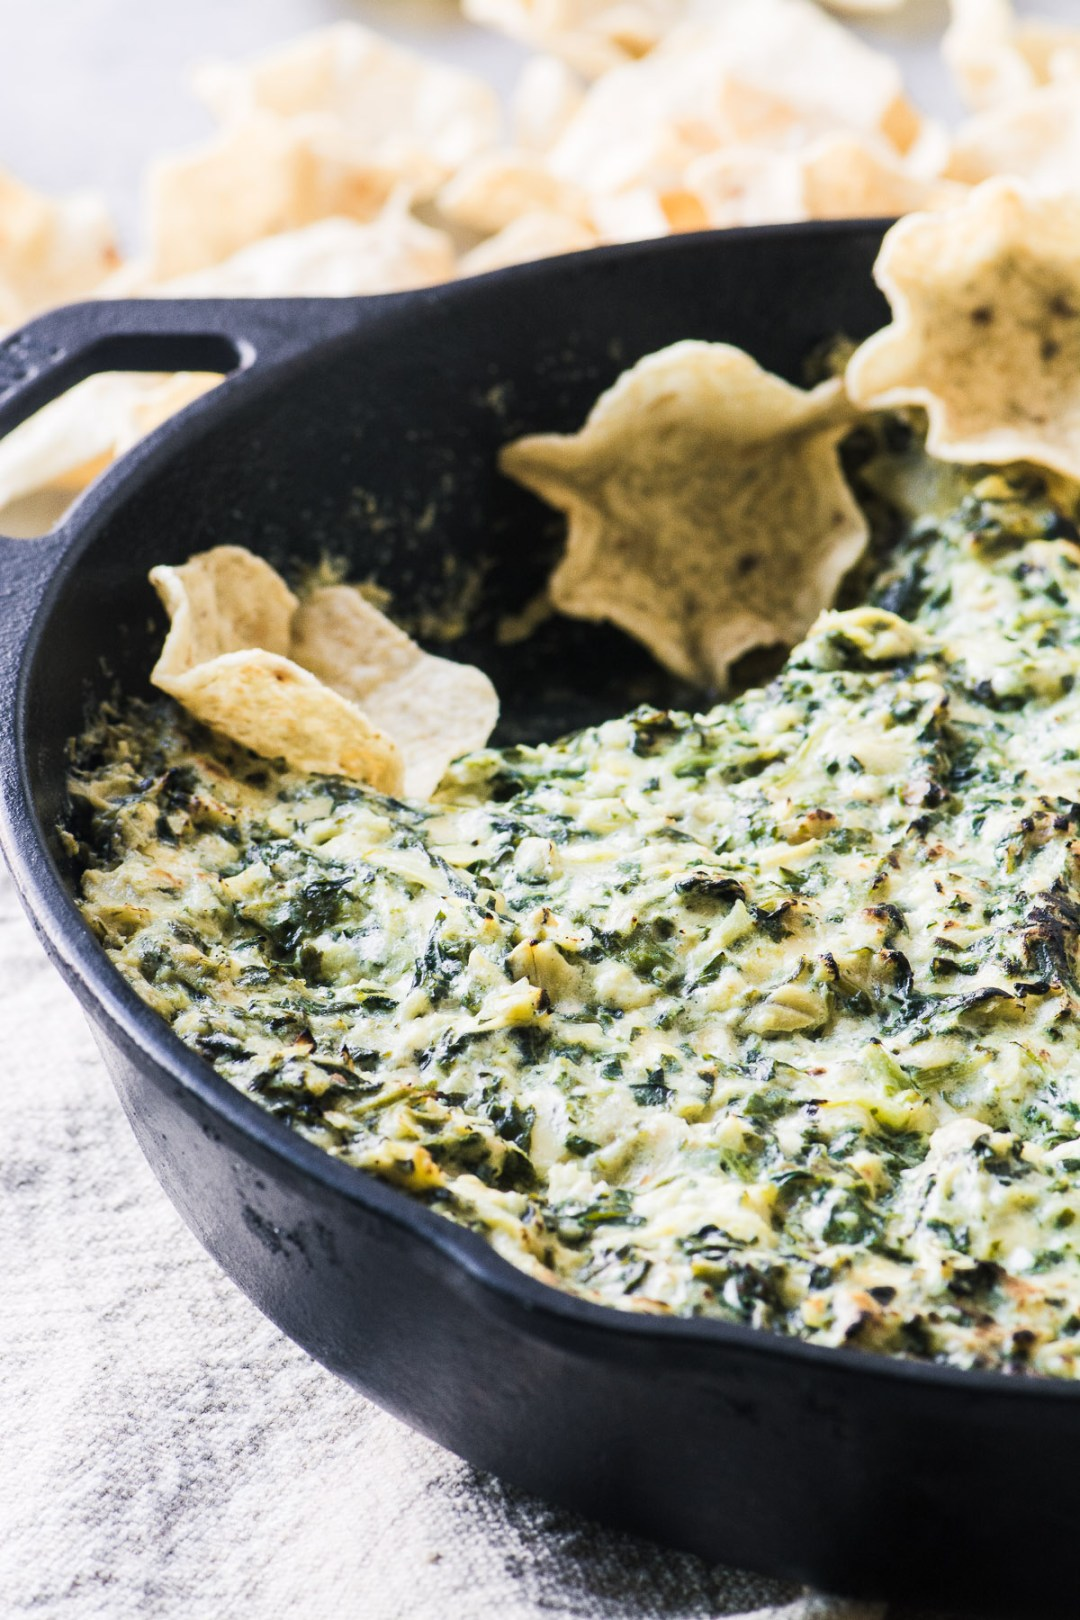 Smokey Spinach Artichoke Dip baked in a cast iron skillet with chips